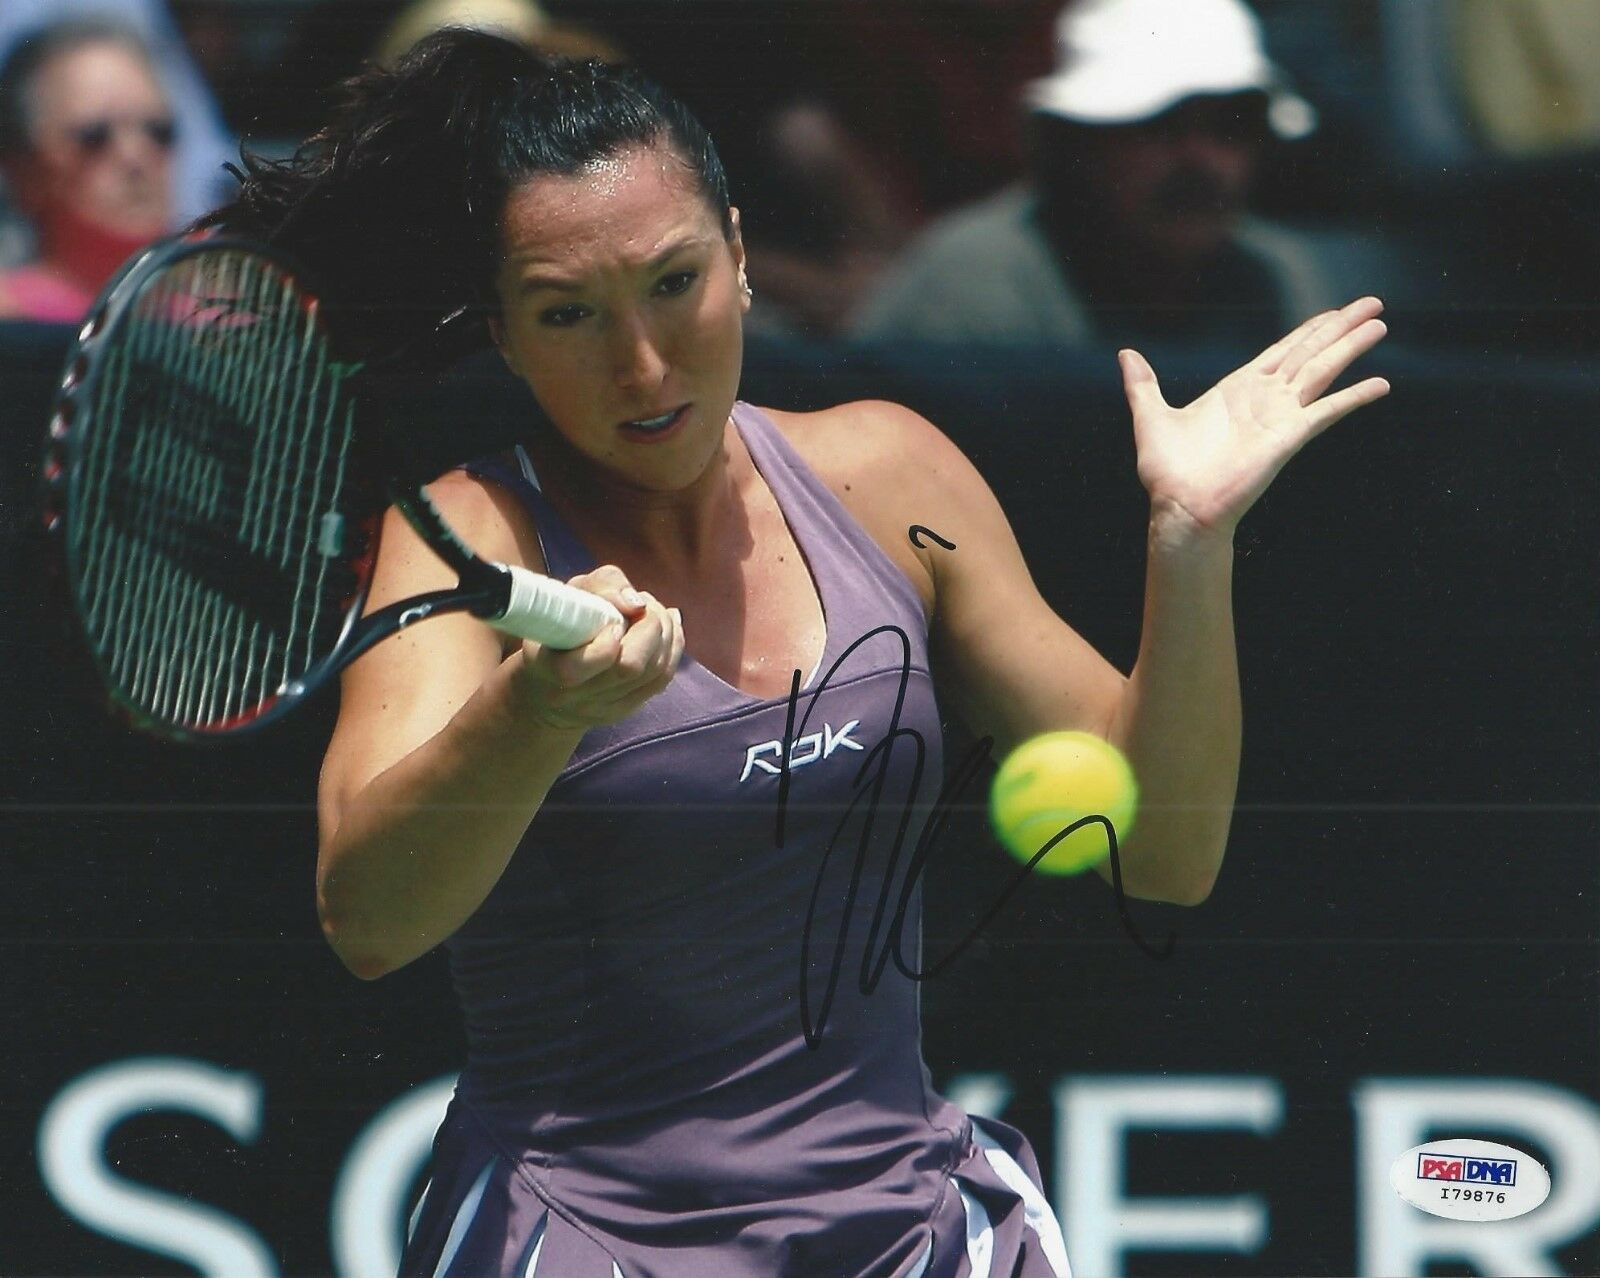 Jelena Jankovic Signed Tennis 8x10 Photo - PSA/DNA # I79876